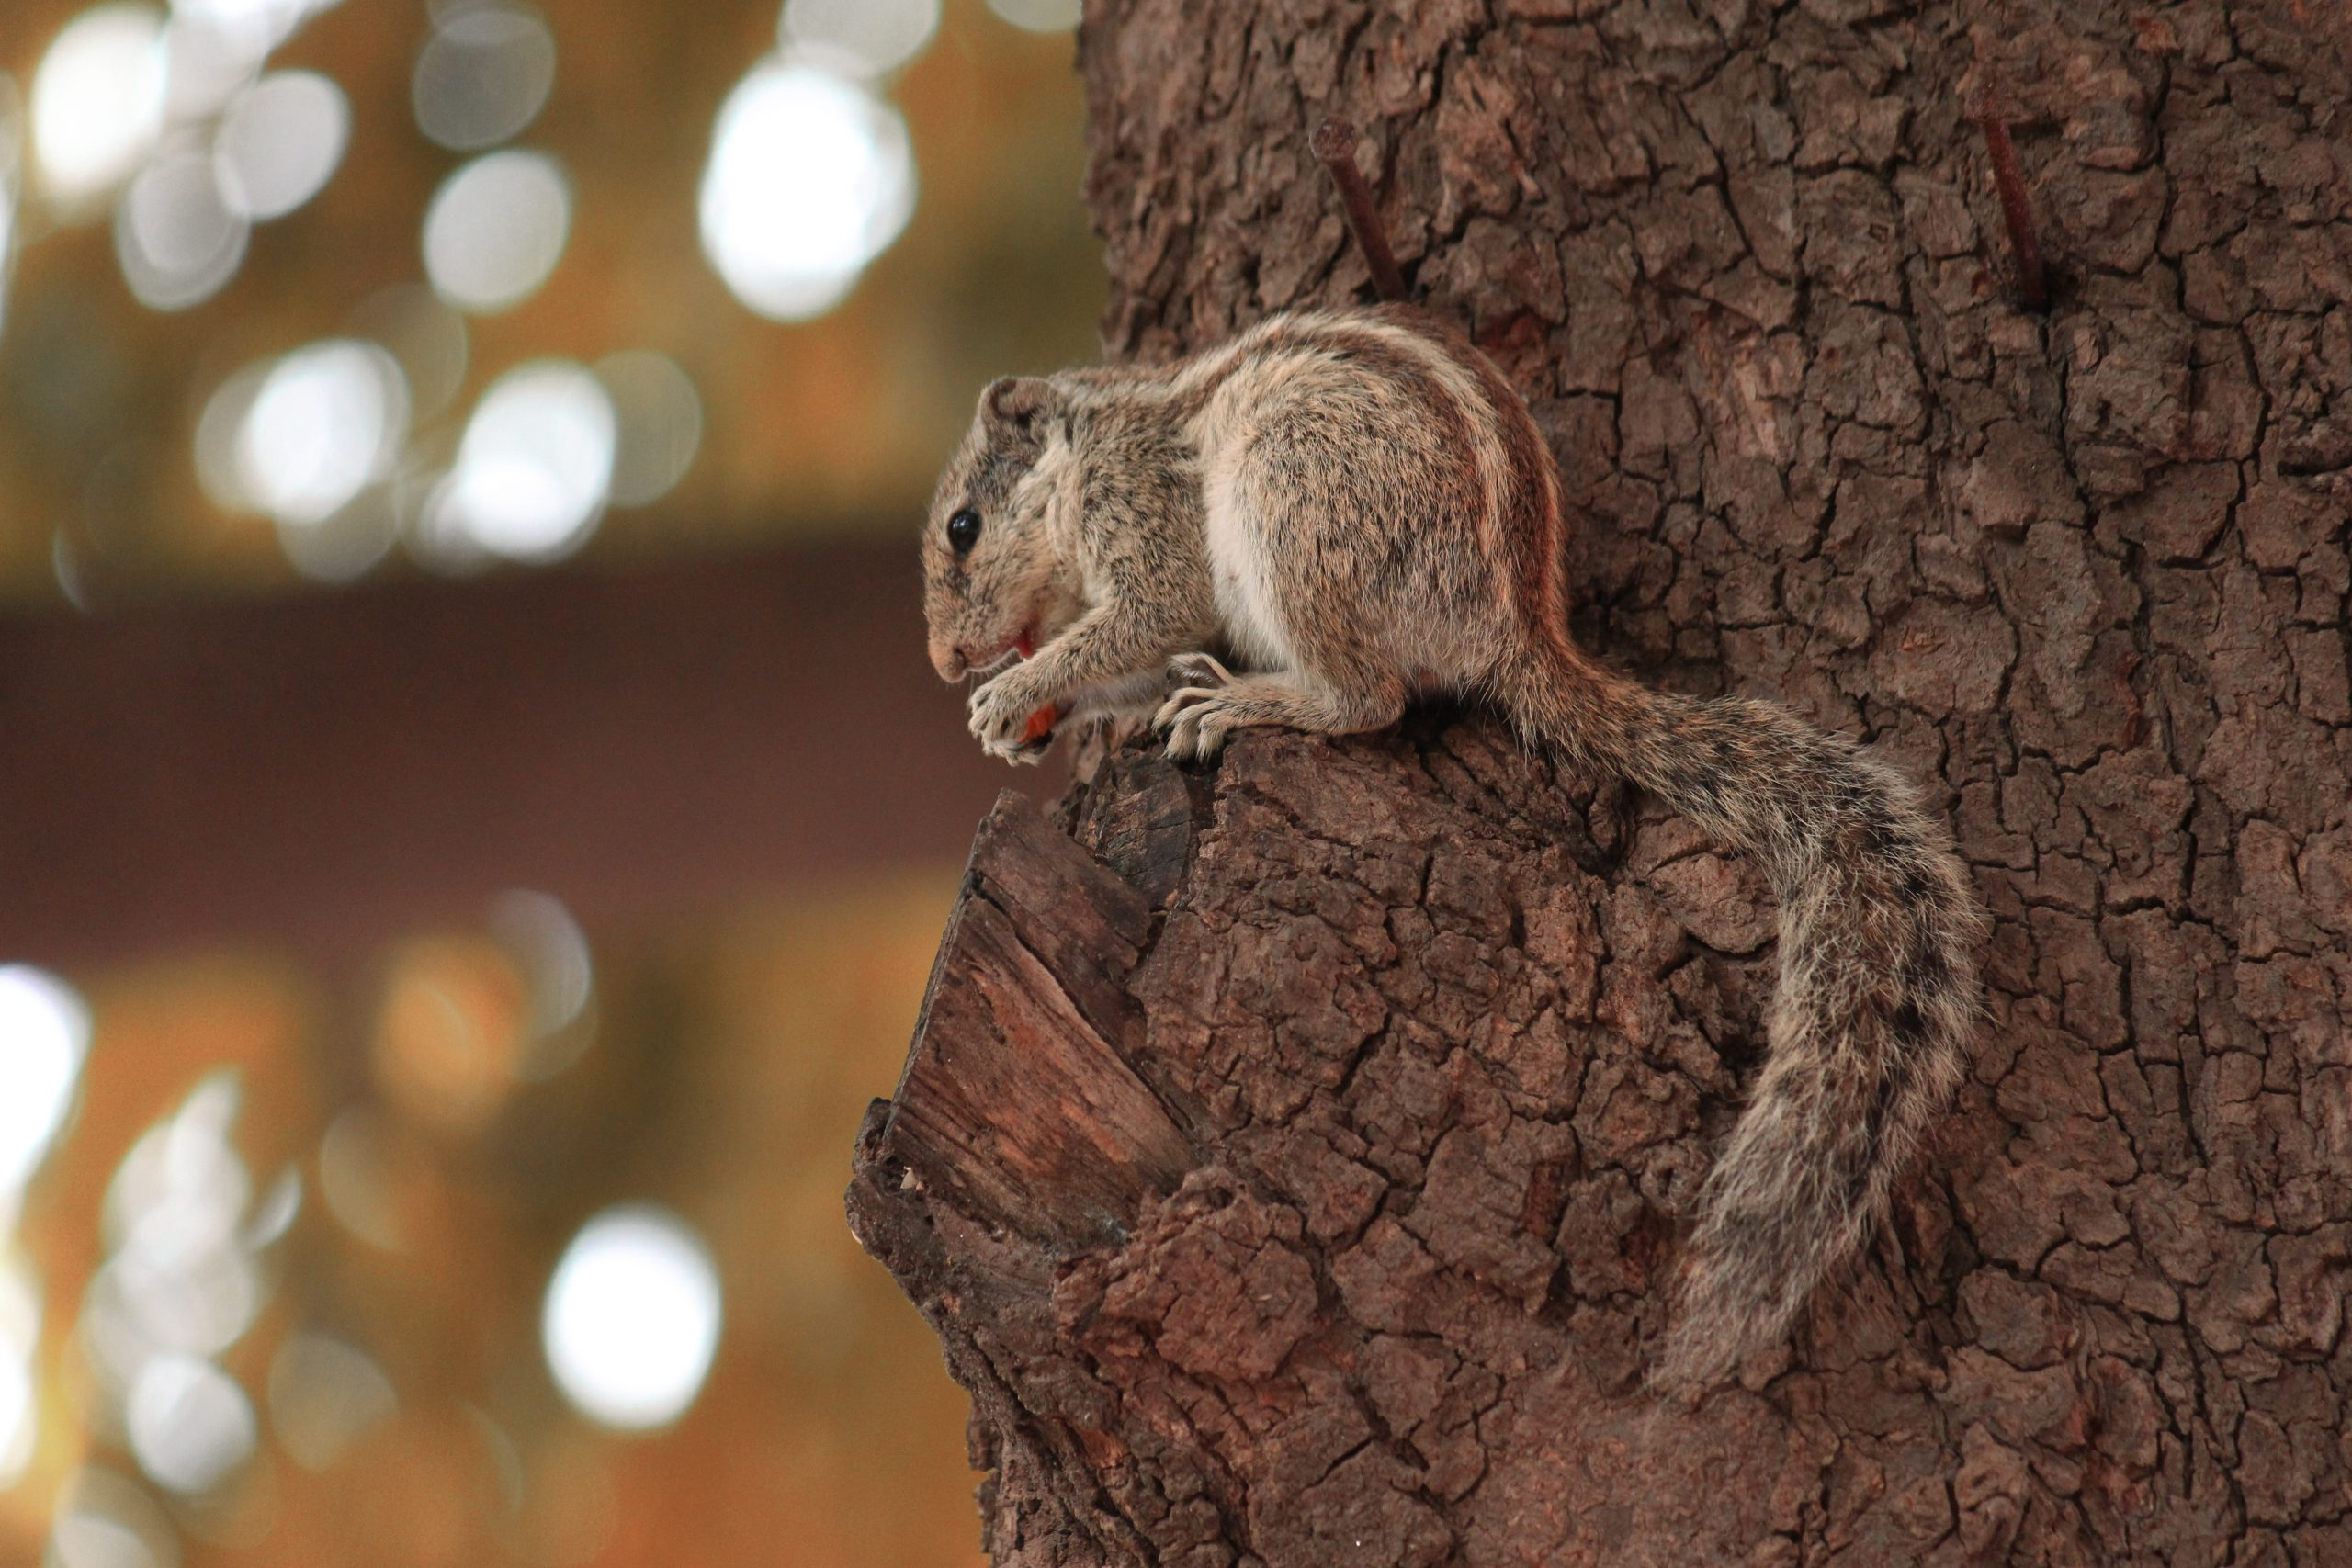 Indian squirrel on a tree